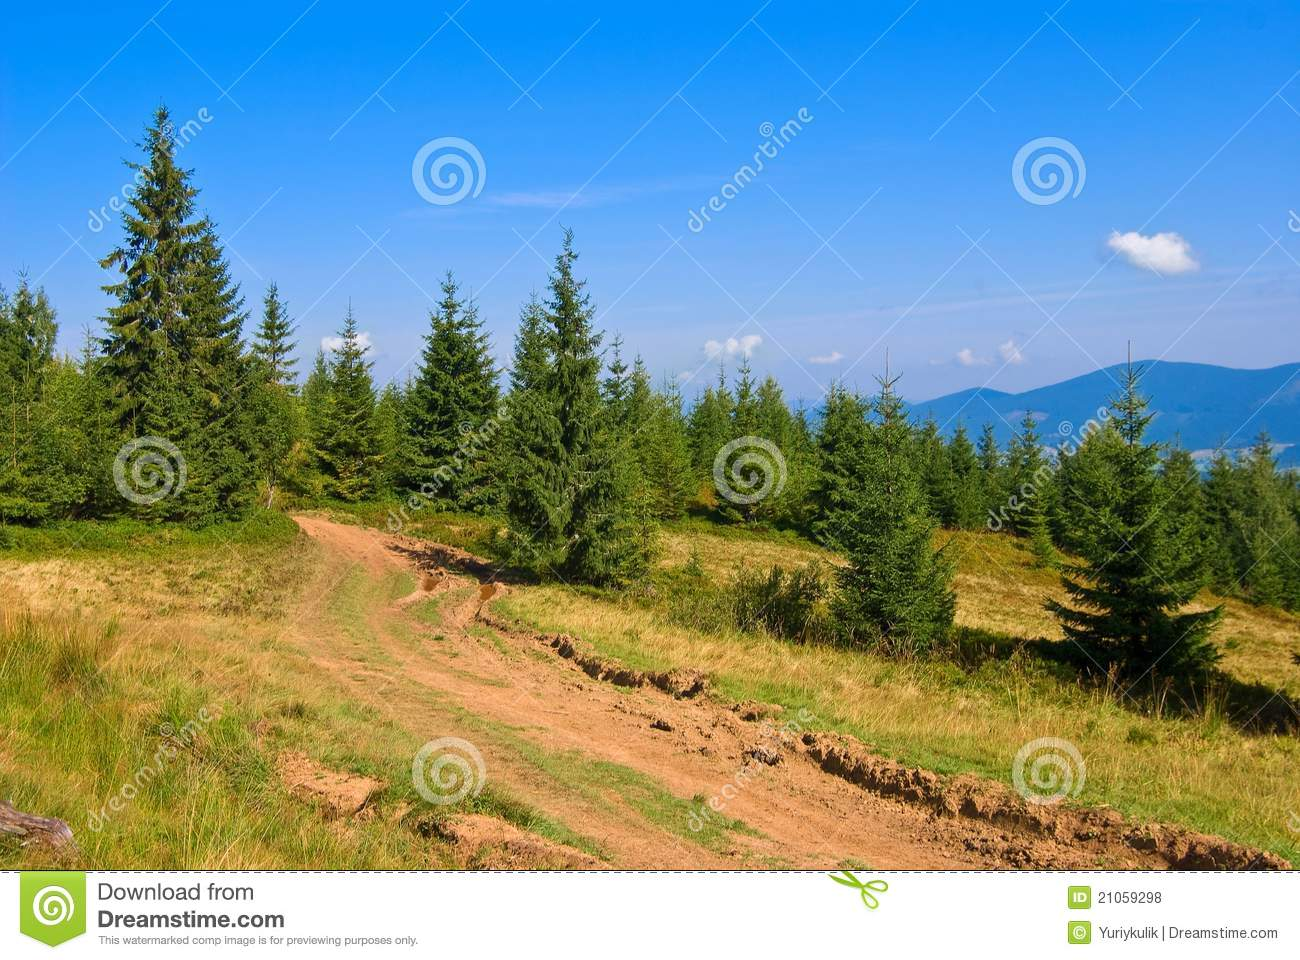 Mountain pine forest